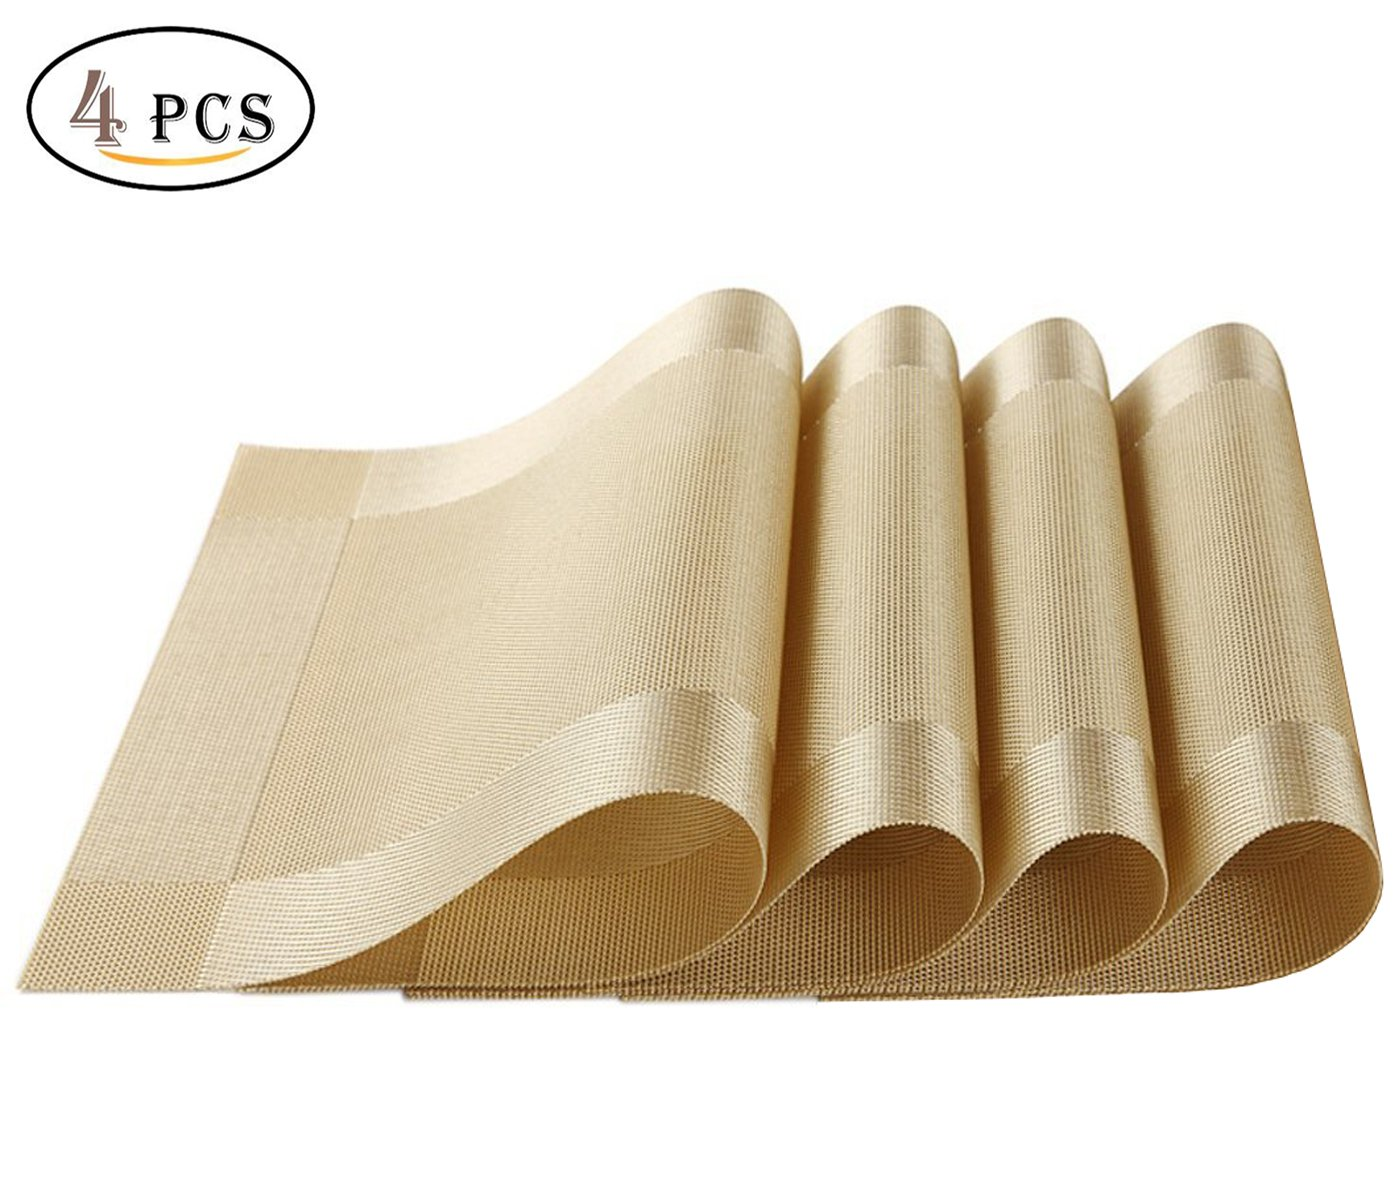 Cheap Ikea Placemats Find Ikea Placemats Deals On Line At